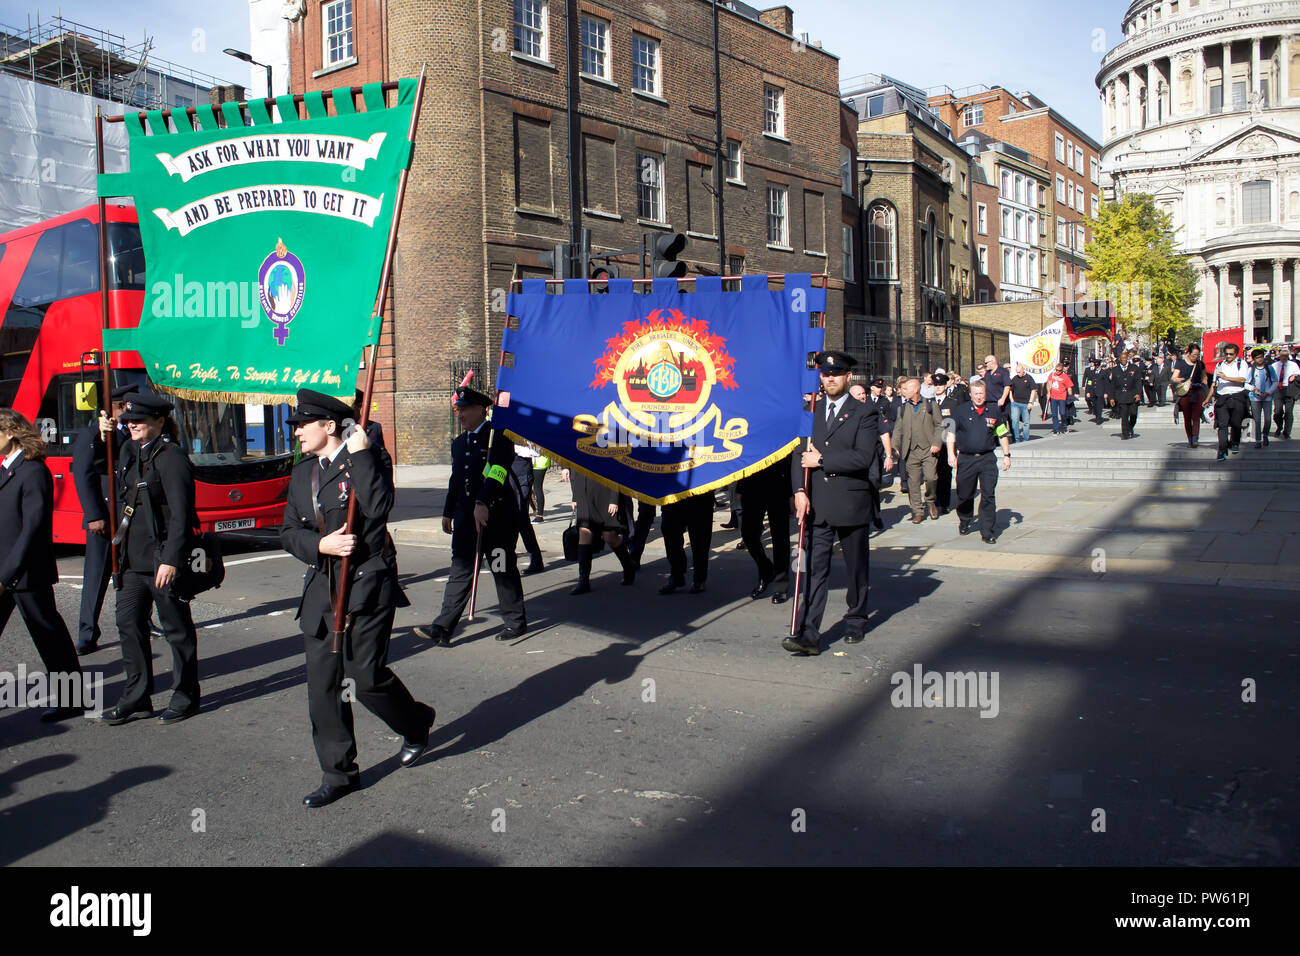 London,UK,13th October 2018,As part of celebrations to mark 100 years since the Fire Brigades Union (FBU) was formed, a formal wreath-laying ceremony took place at the National Firefighters' Memorial at St Paul's Cathedral in London. More than 50 wreaths were laid in memory of fallen firefighters representing every fire service in the UK. Following this ceremony, a formal procession walked across the Millennium Bridge to Southwark Cathedral where a service took place including readings, poetry, storytelling and music to celebrate 100 years of the FBU.Credit Keith Larby/Alamy Live News - Stock Image